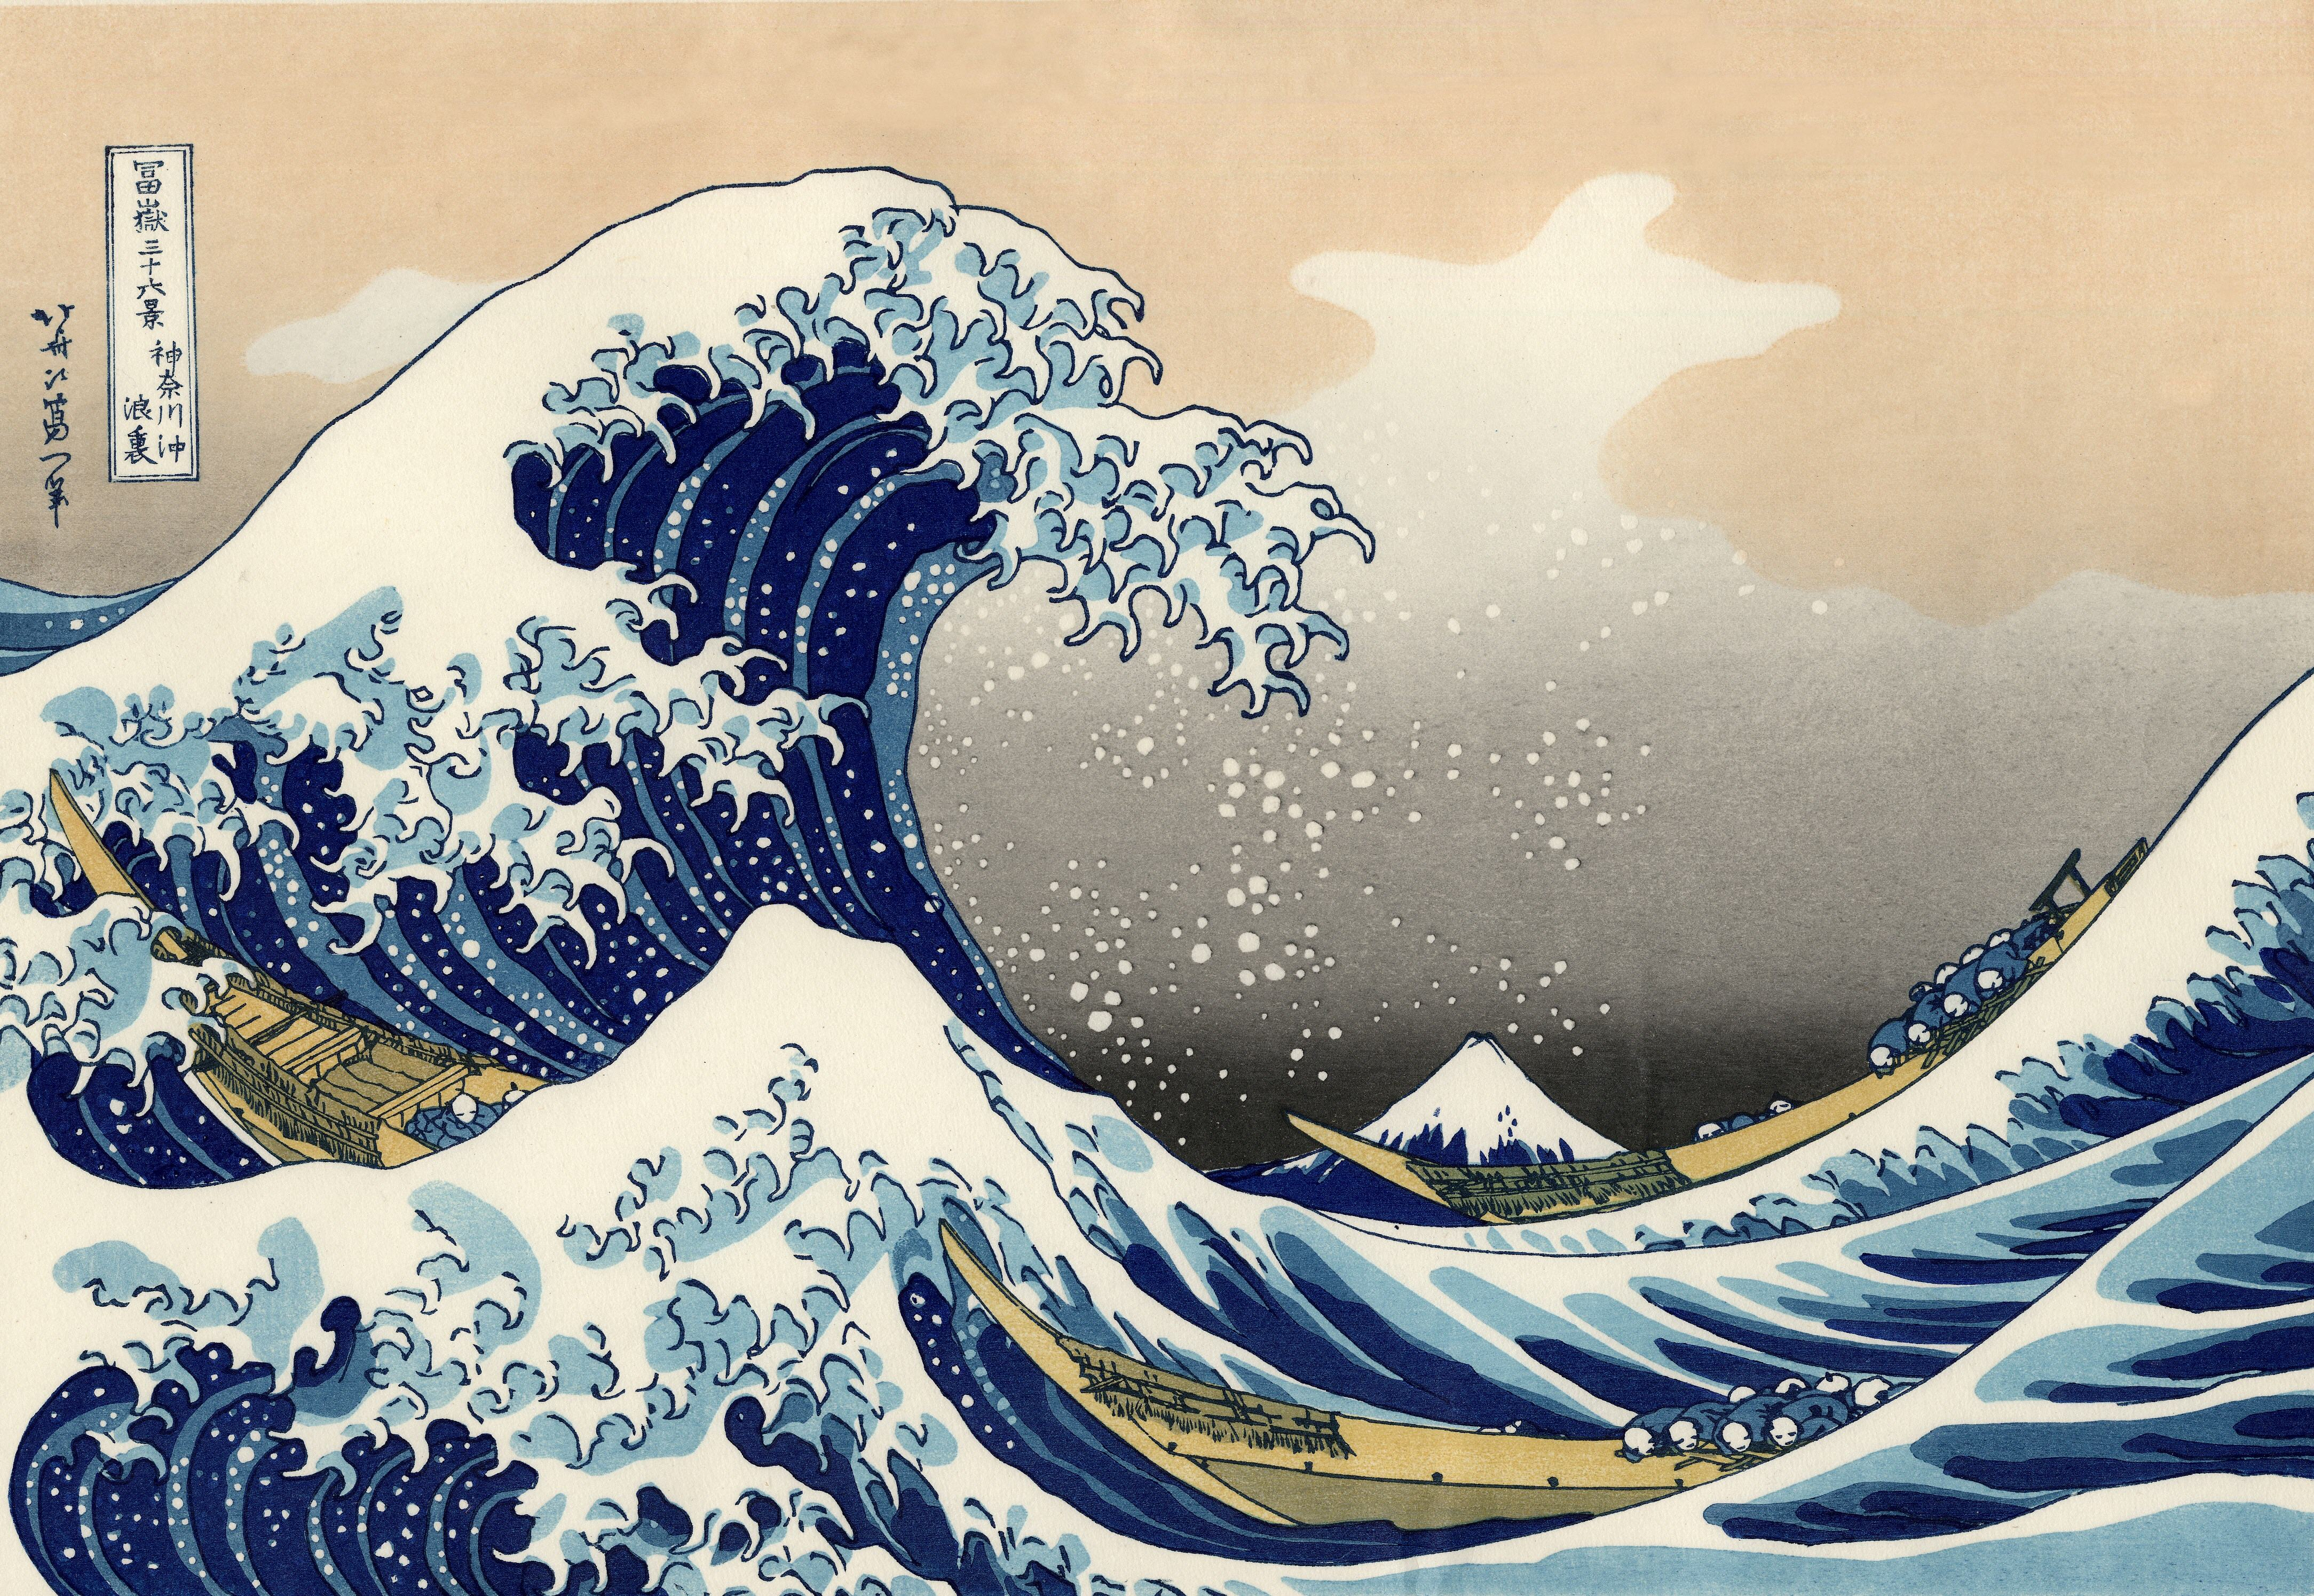 File:The Great Wave off Kanagawa.jpg - Wikipedia, the free ...